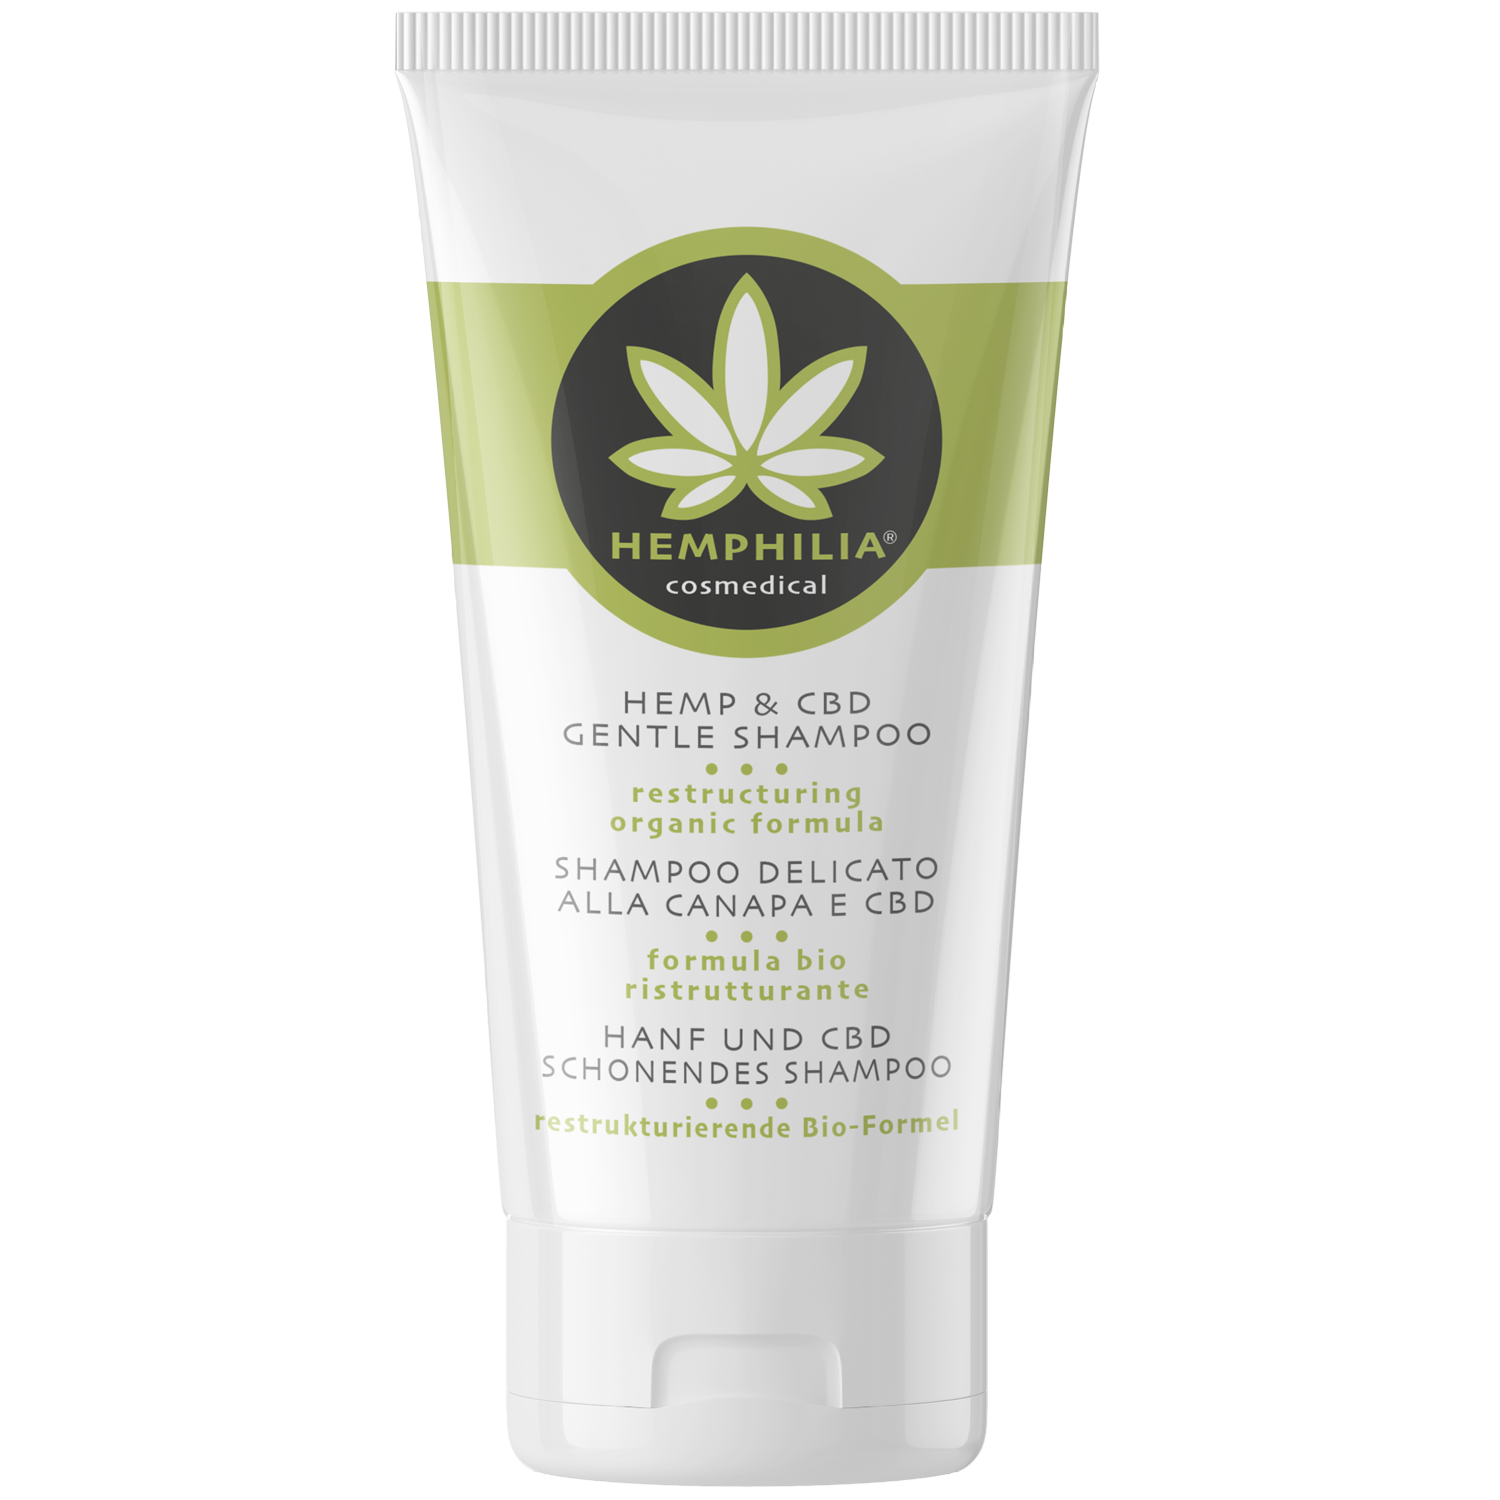 Hemp & CBD Gentle Shampoo